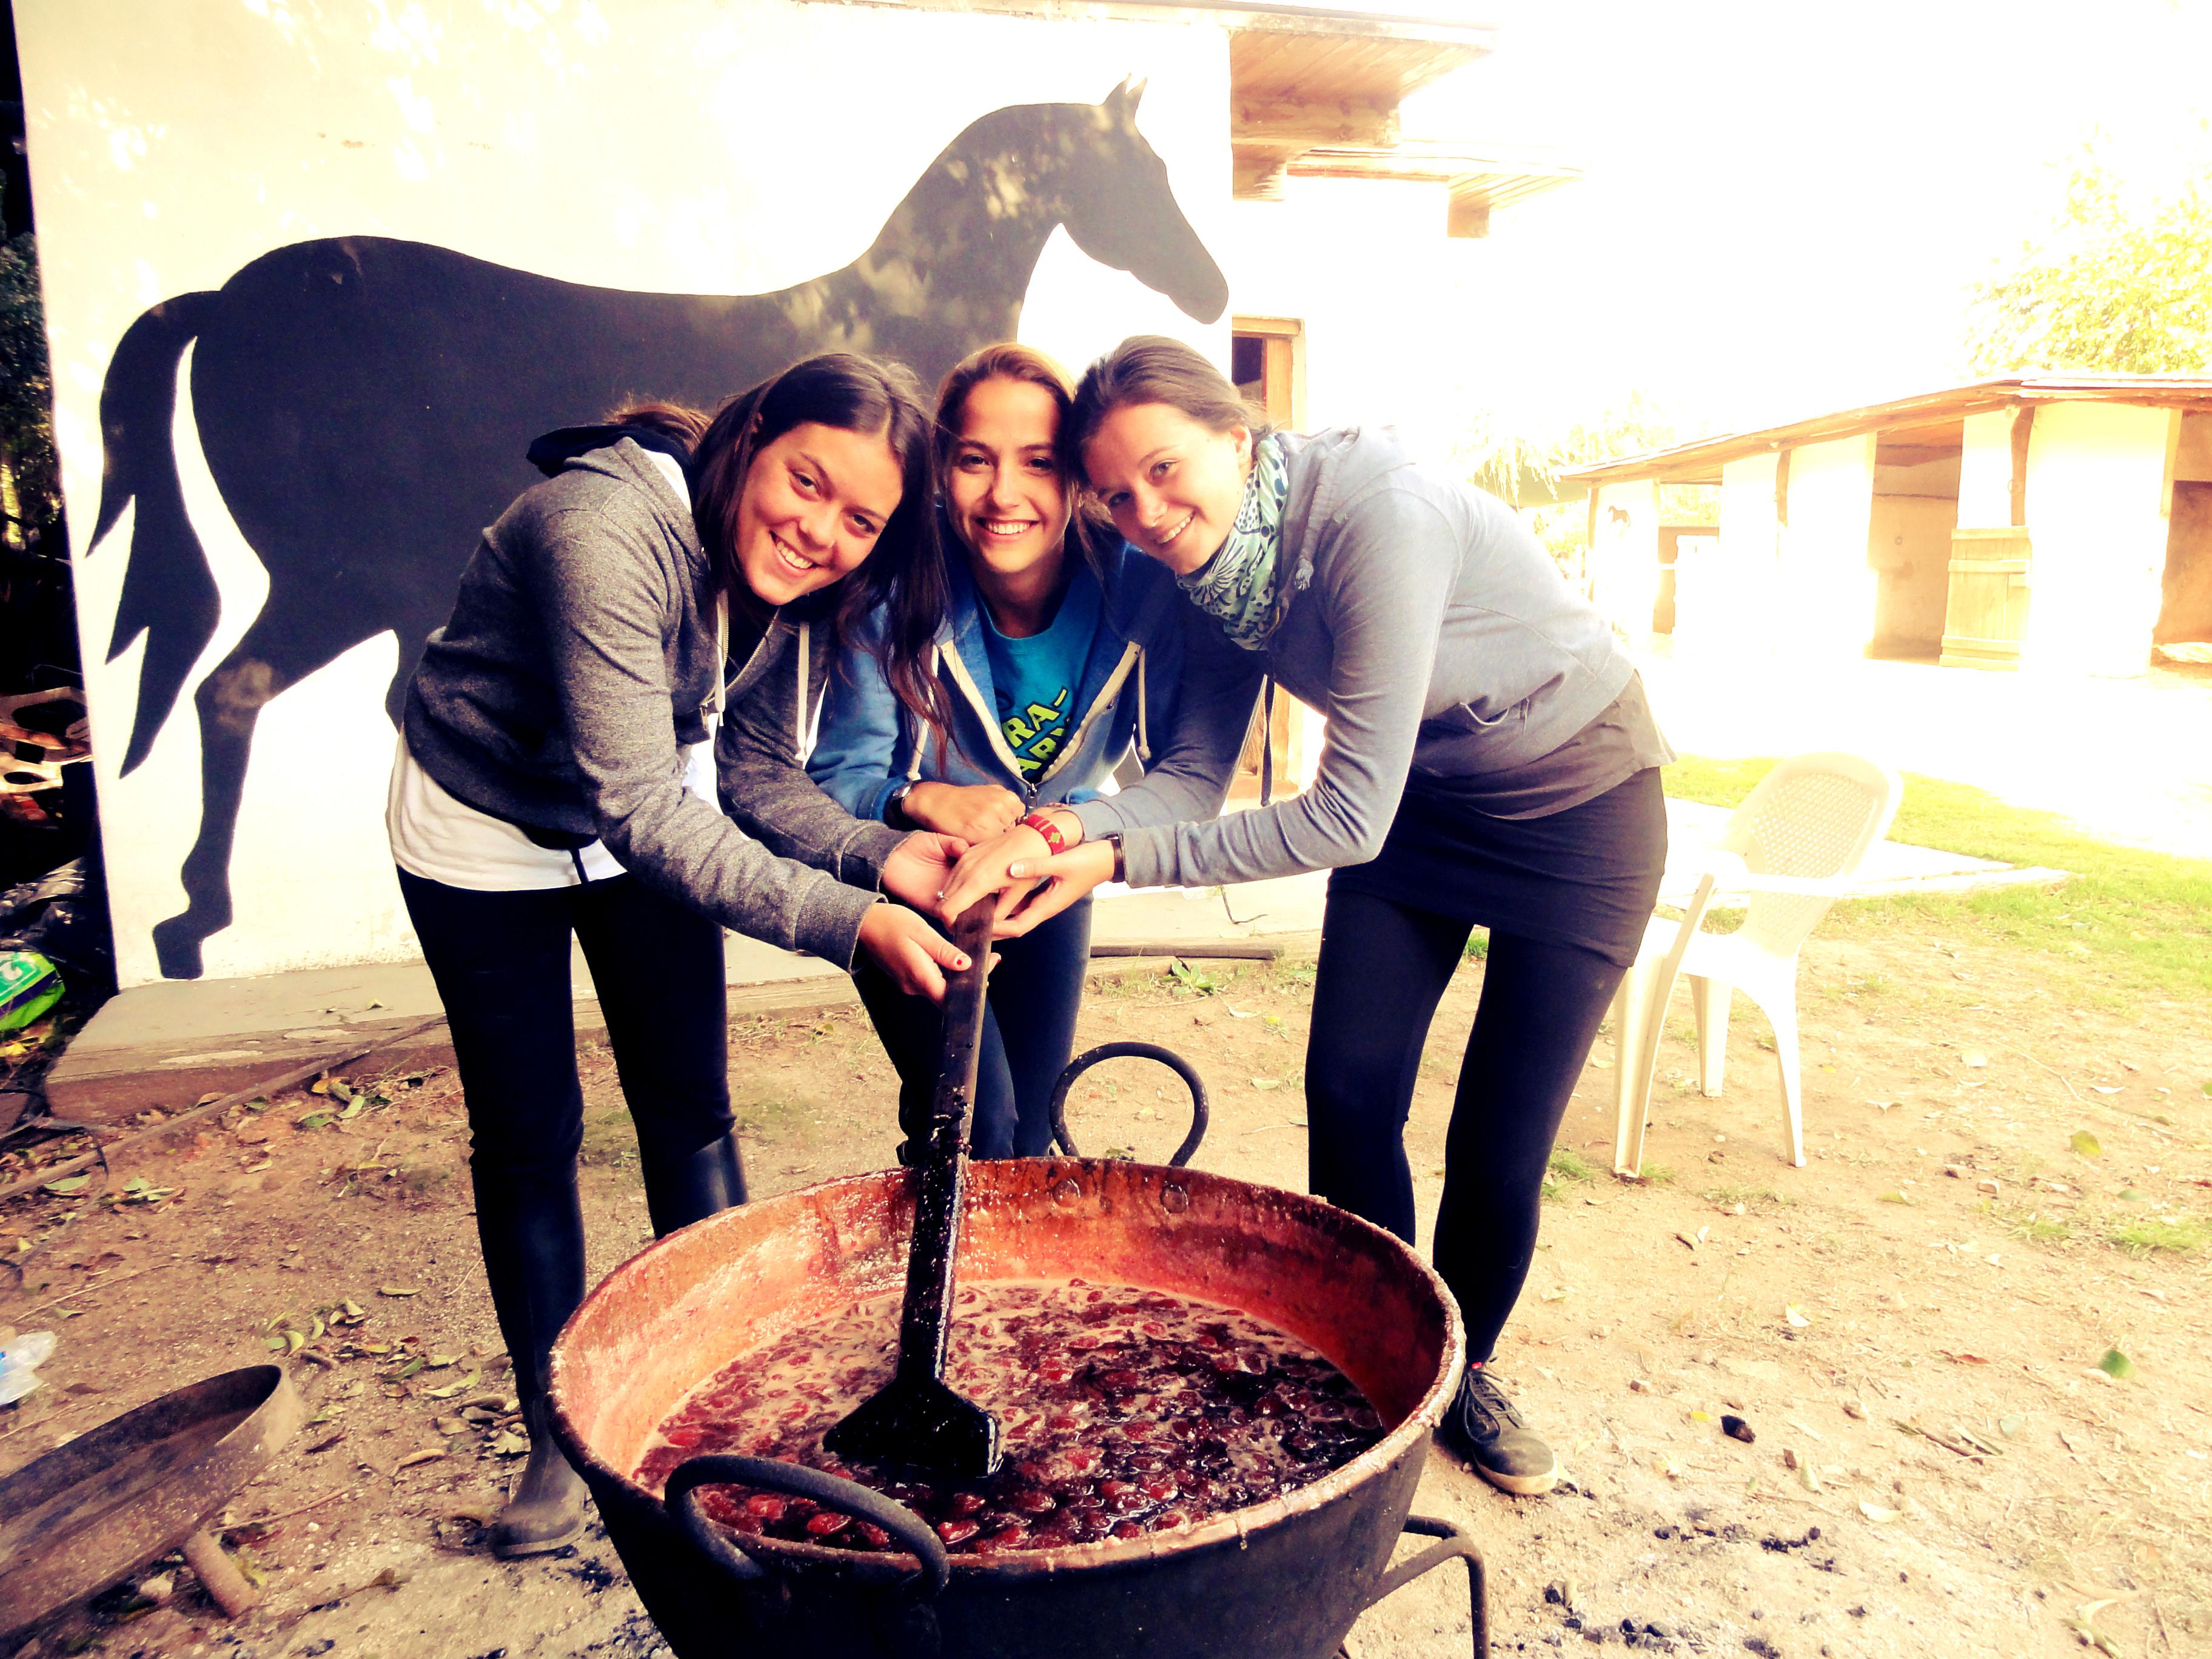 Projects Abroad Equine Therapy interns team up to clean stables in Argentina.